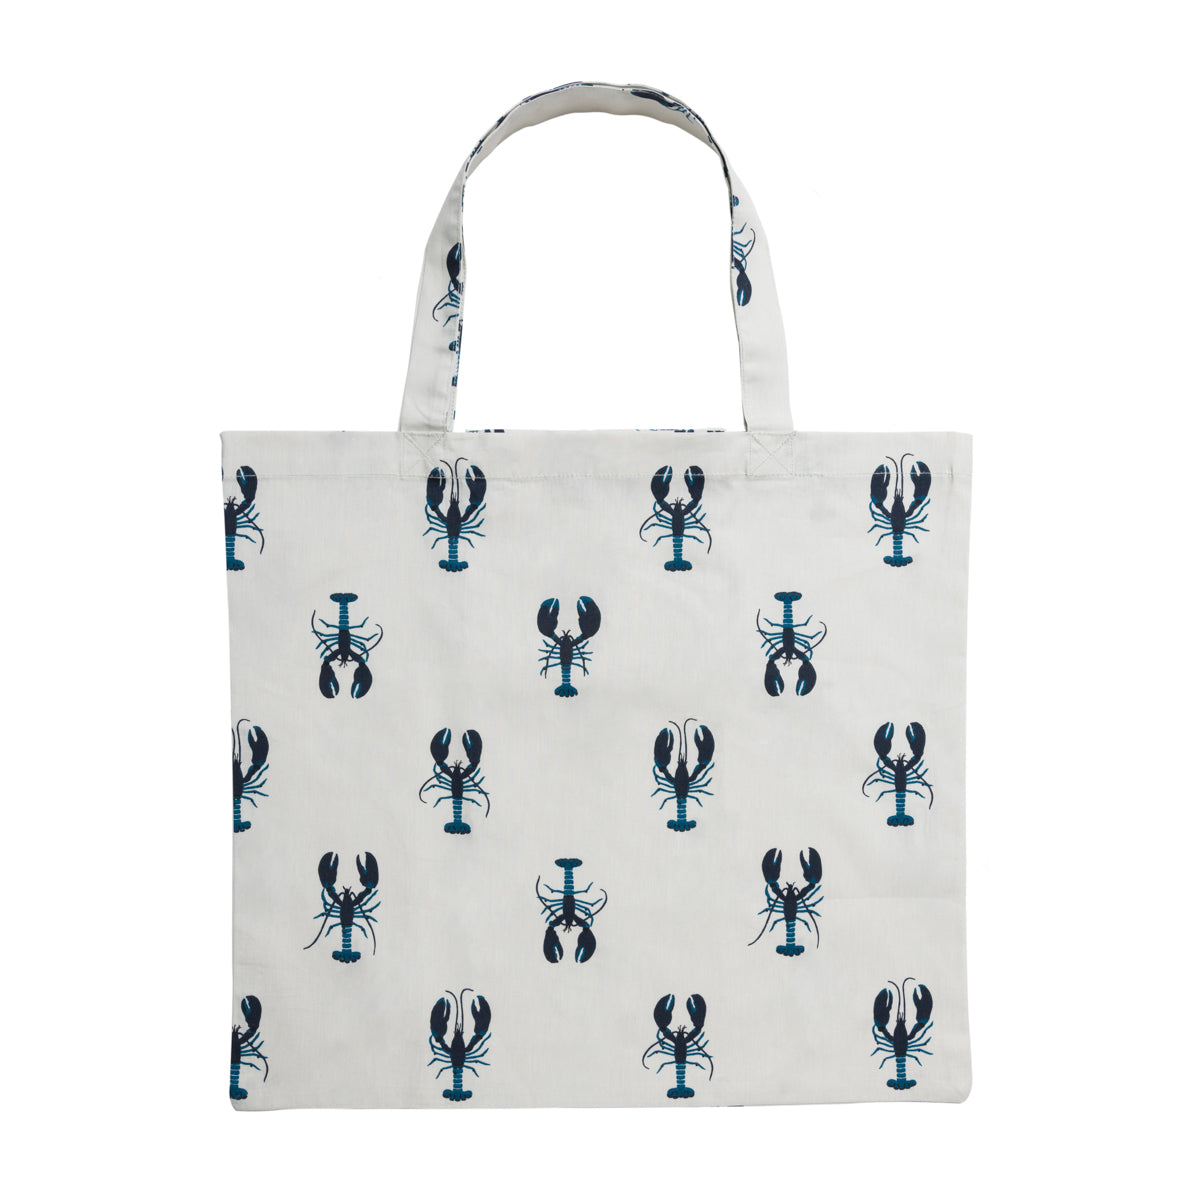 Lobster Folding Shopping Bag by Sophie Allport